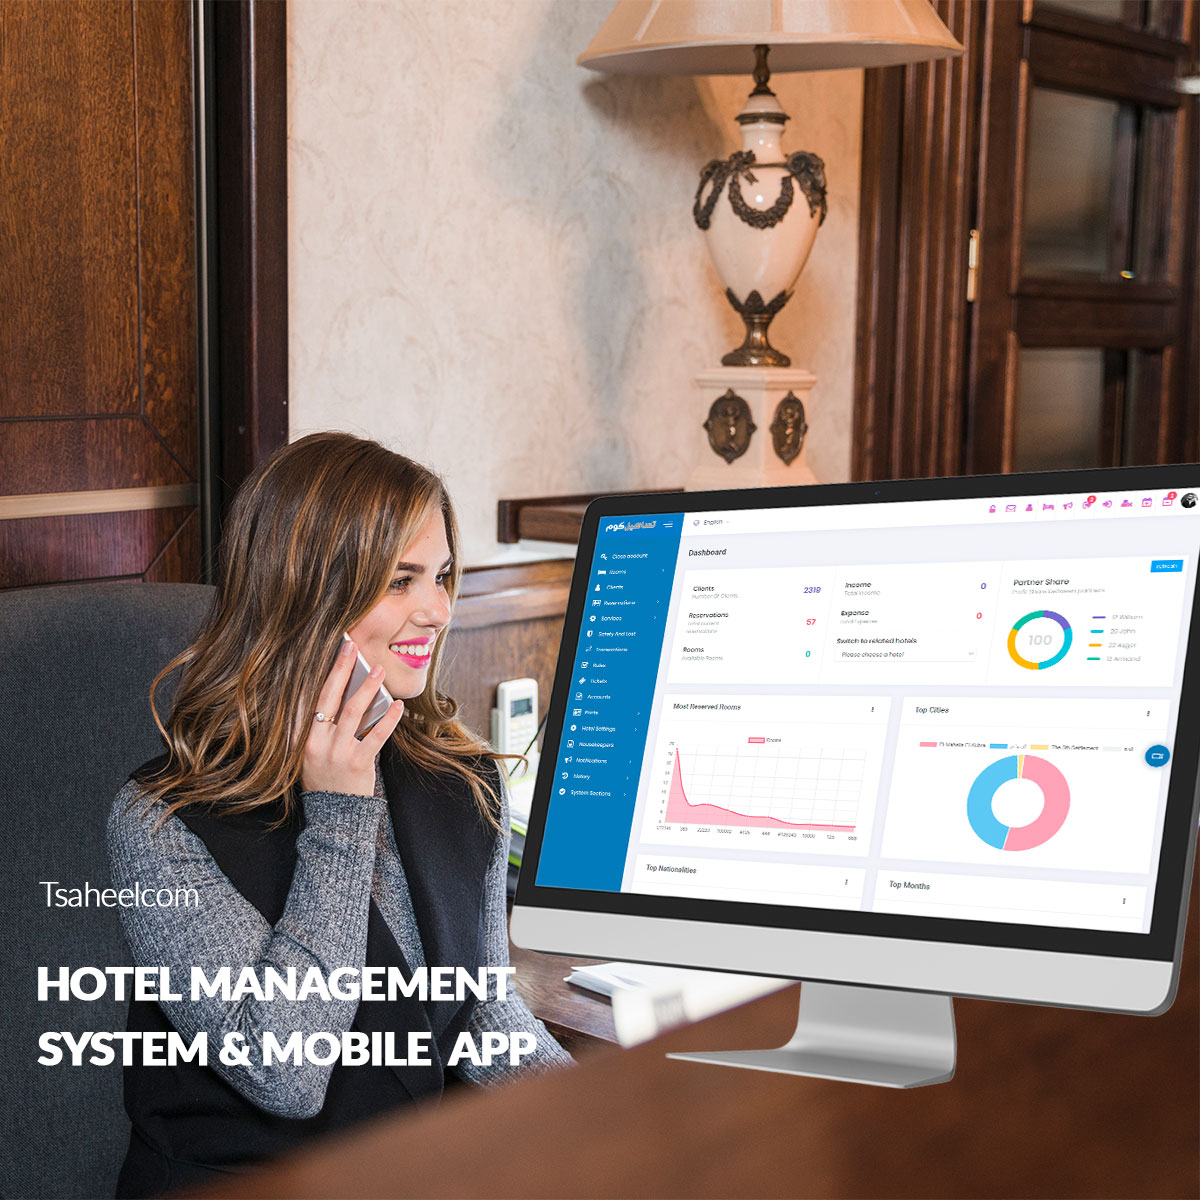 Hotel Management system & Mobile App